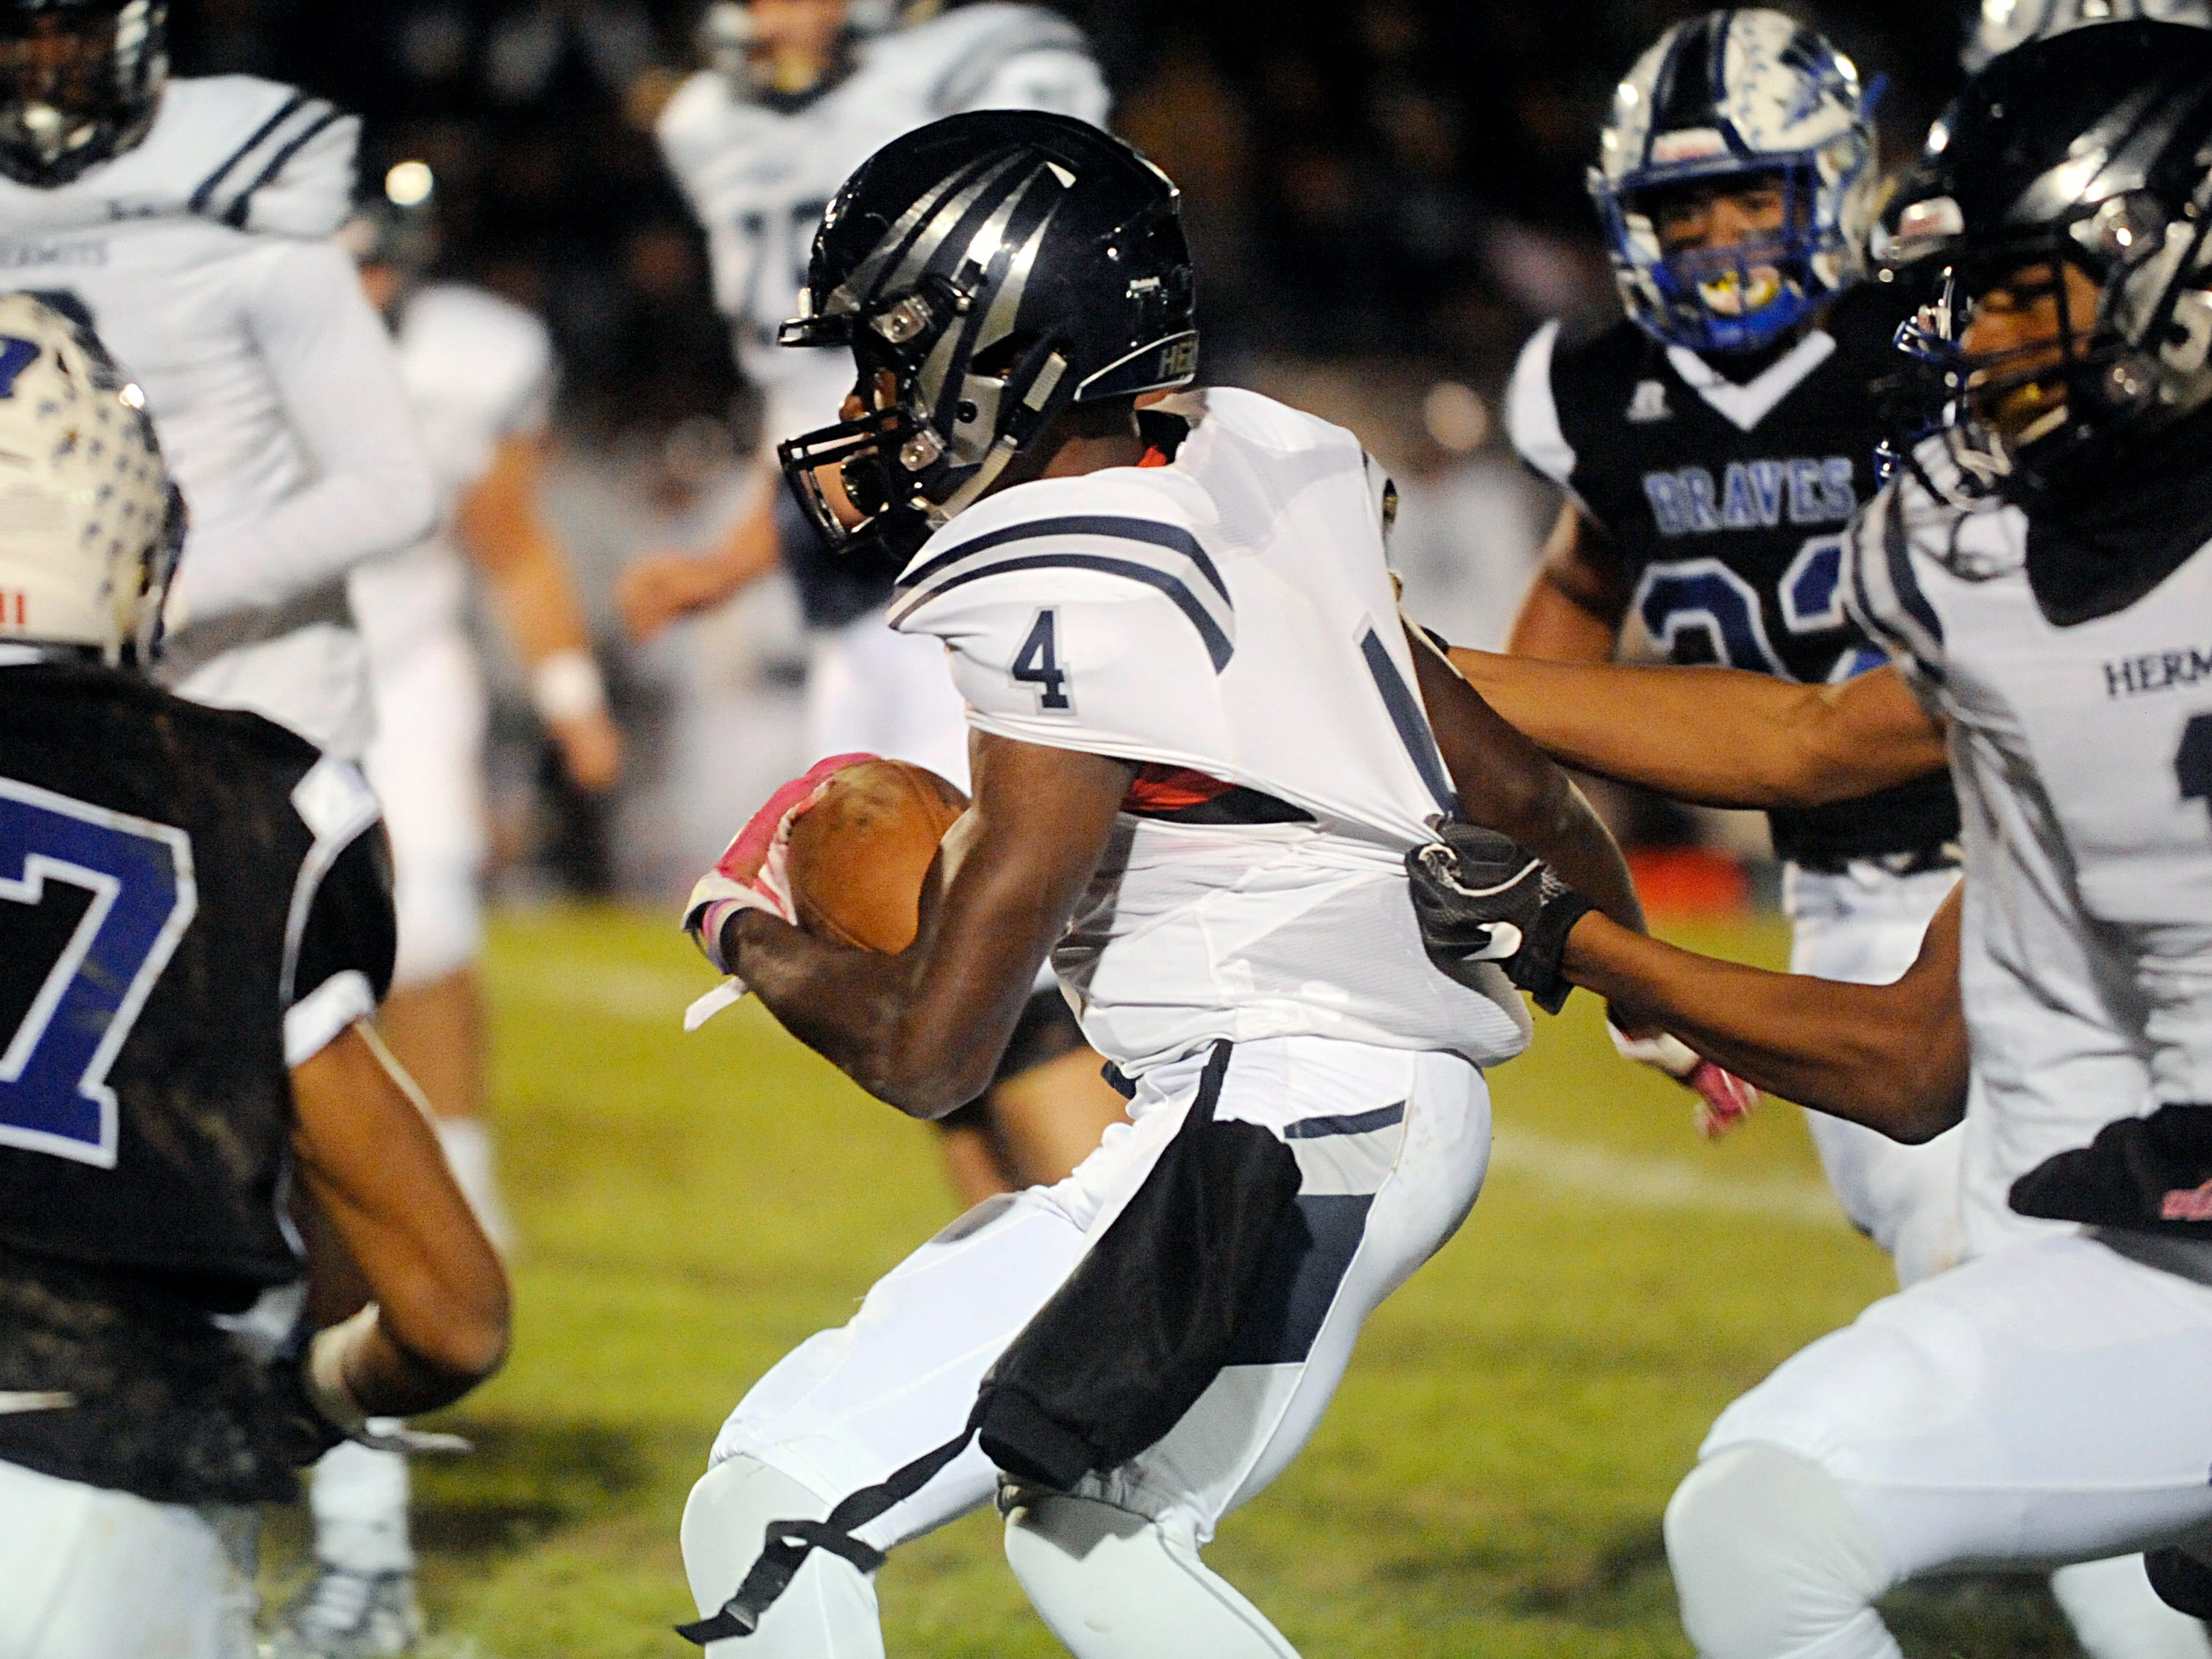 St. Augustine's Nasir Hill runs for a gain against Williamstown. The Braves topped the Hermits, 14-7, on Friday, October 26, 2018.